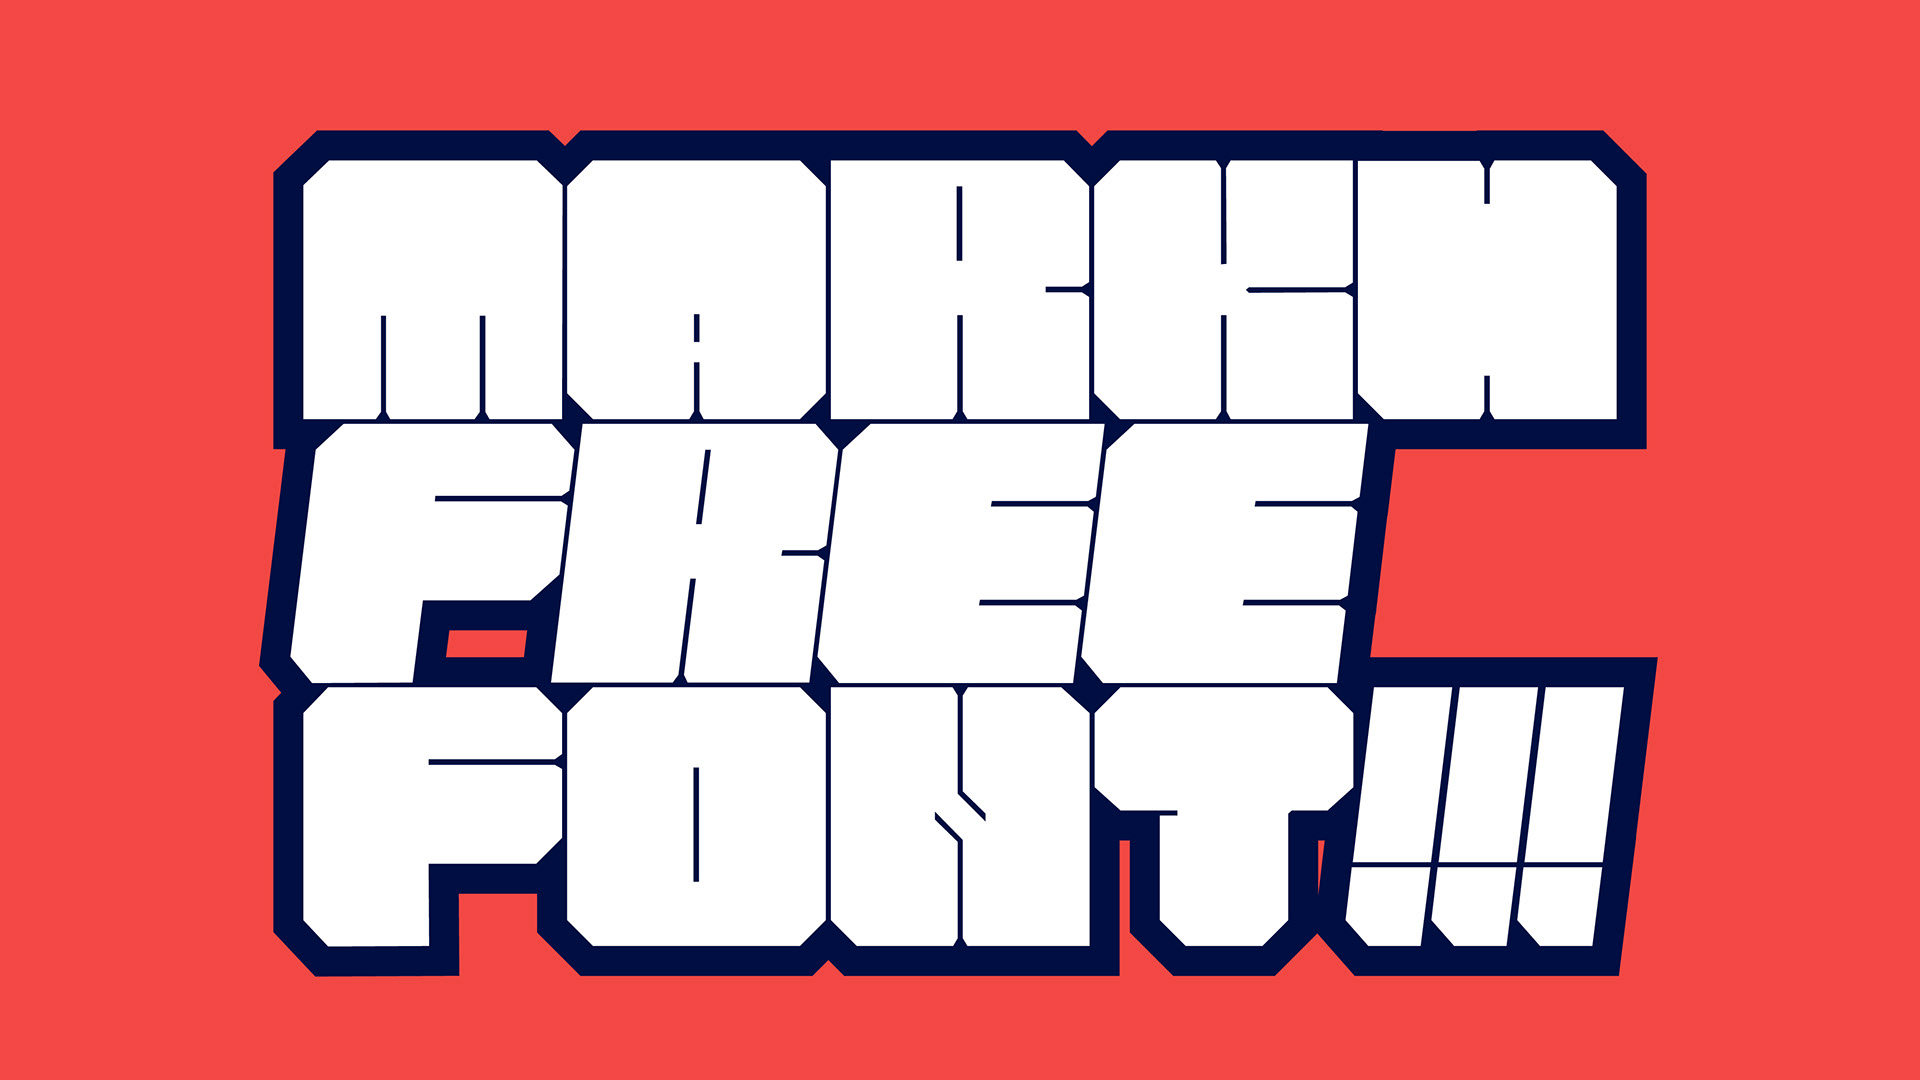 MARKH Free Font - decorative-display